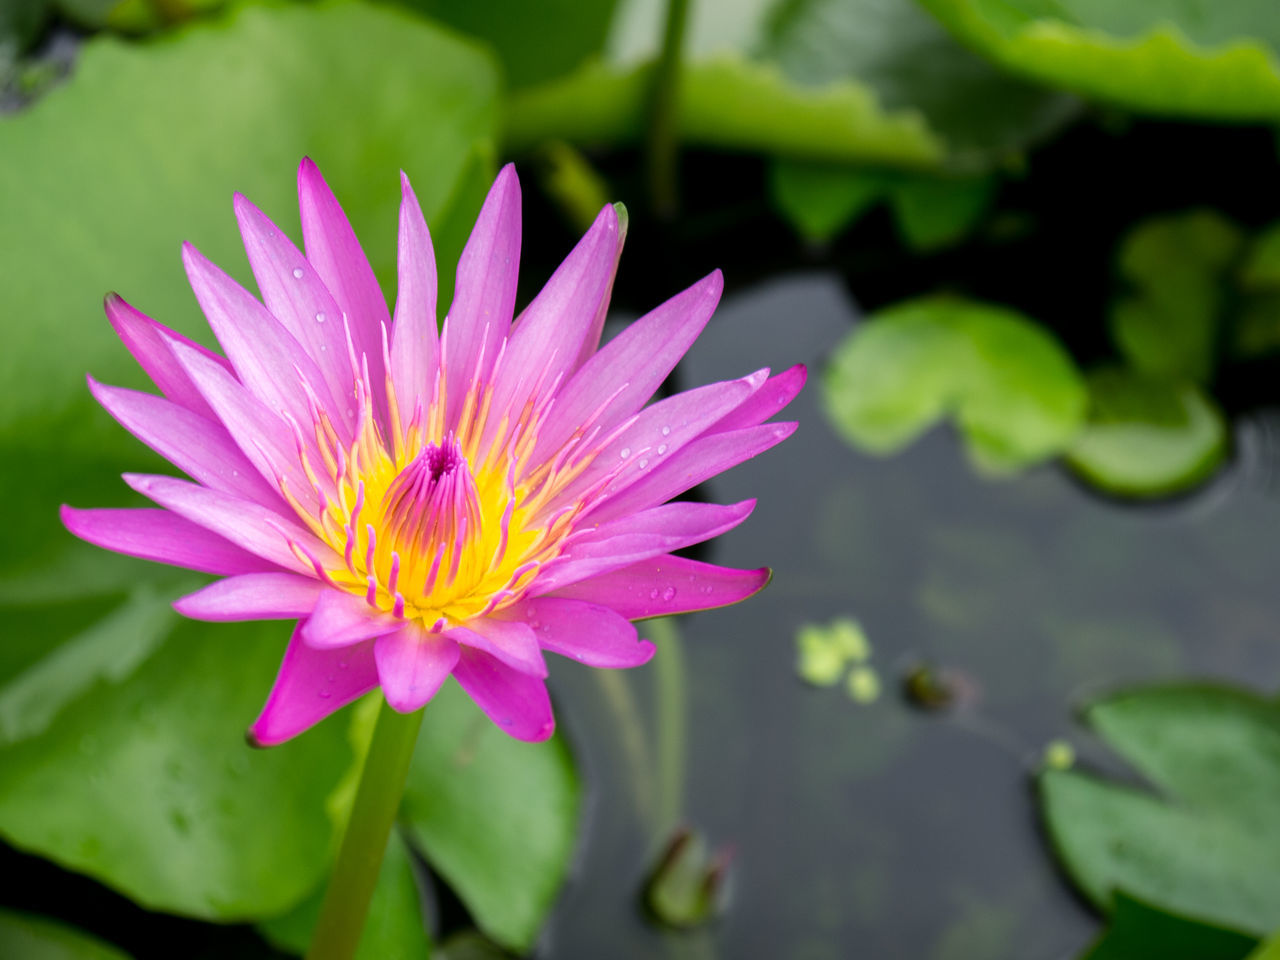 Blooming Purple Lotus in Pond Beauty In Nature Blooming Close-up Day Flower Flower Head Focus On Foreground Fragility Freshness Growth Lotus Love Nature No People Osteospermum Outdoors Petal Pink Color Plant